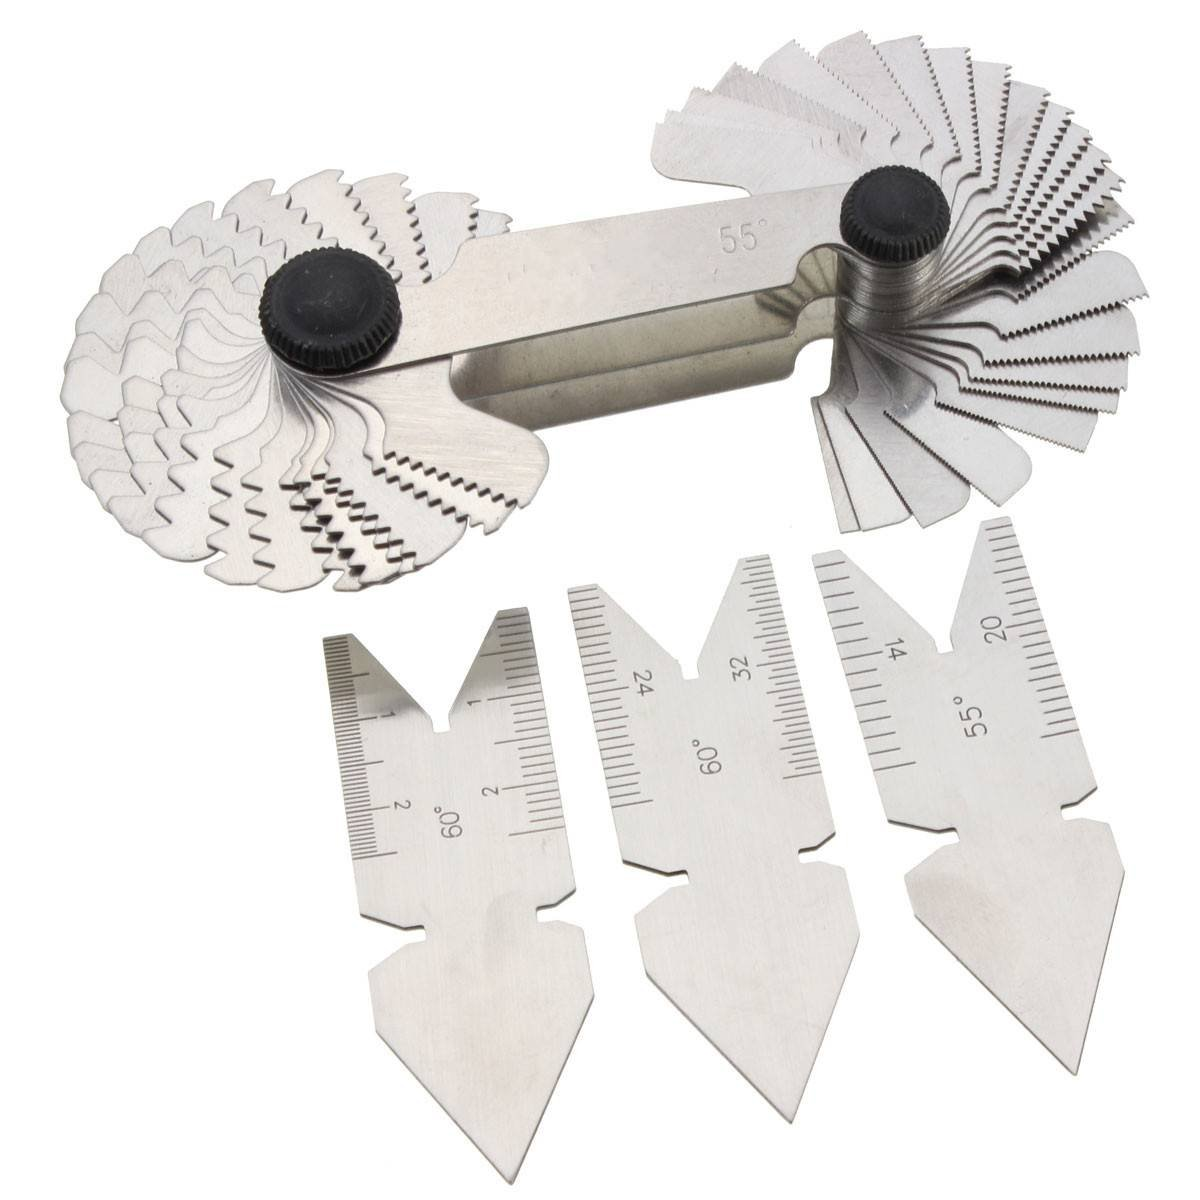 GOCHANGE Screw Thread Pitch Cutting Gauge Tool Set Centre Gage 50 Degree Inch System and 60 Degree Metric System 4 Pcs